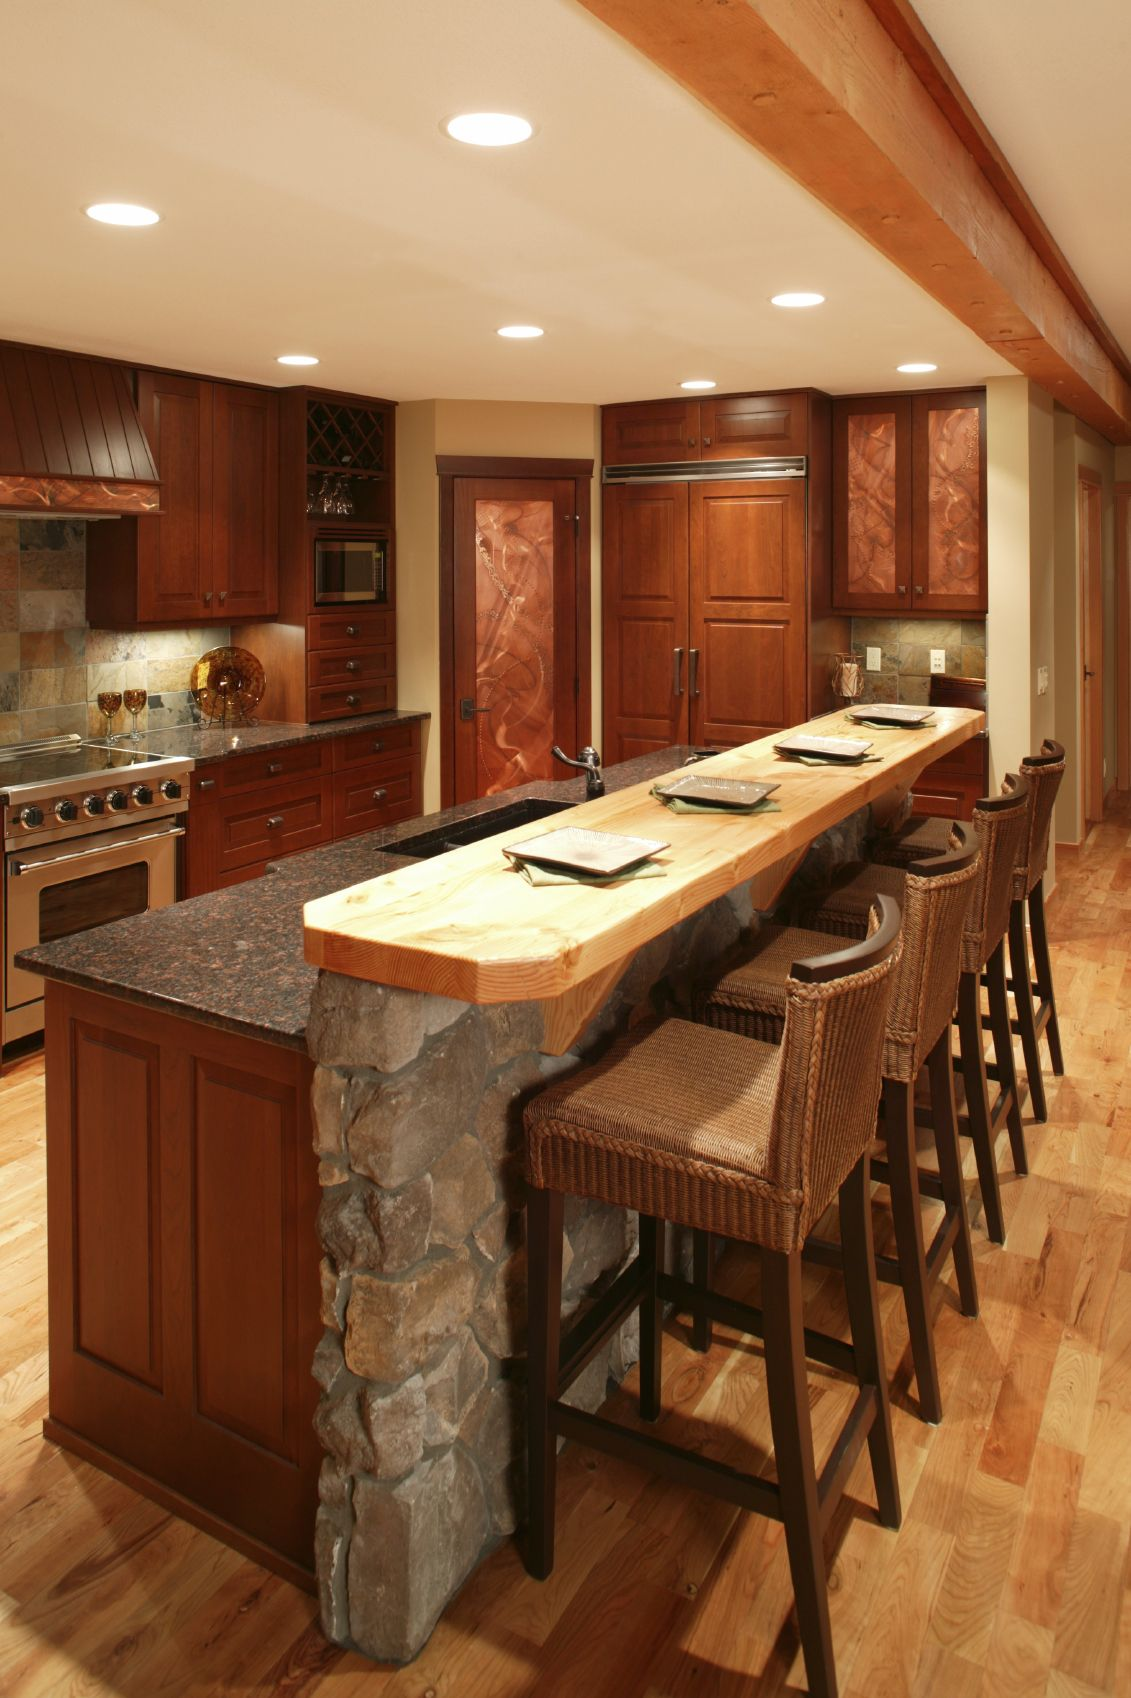 Island Comprised Of Stone Wall And Rich Wood Paneling Matching The  Cabinetry Throughout This Kitchen, Features Marble Countertop And Raised  Wood Dining ...